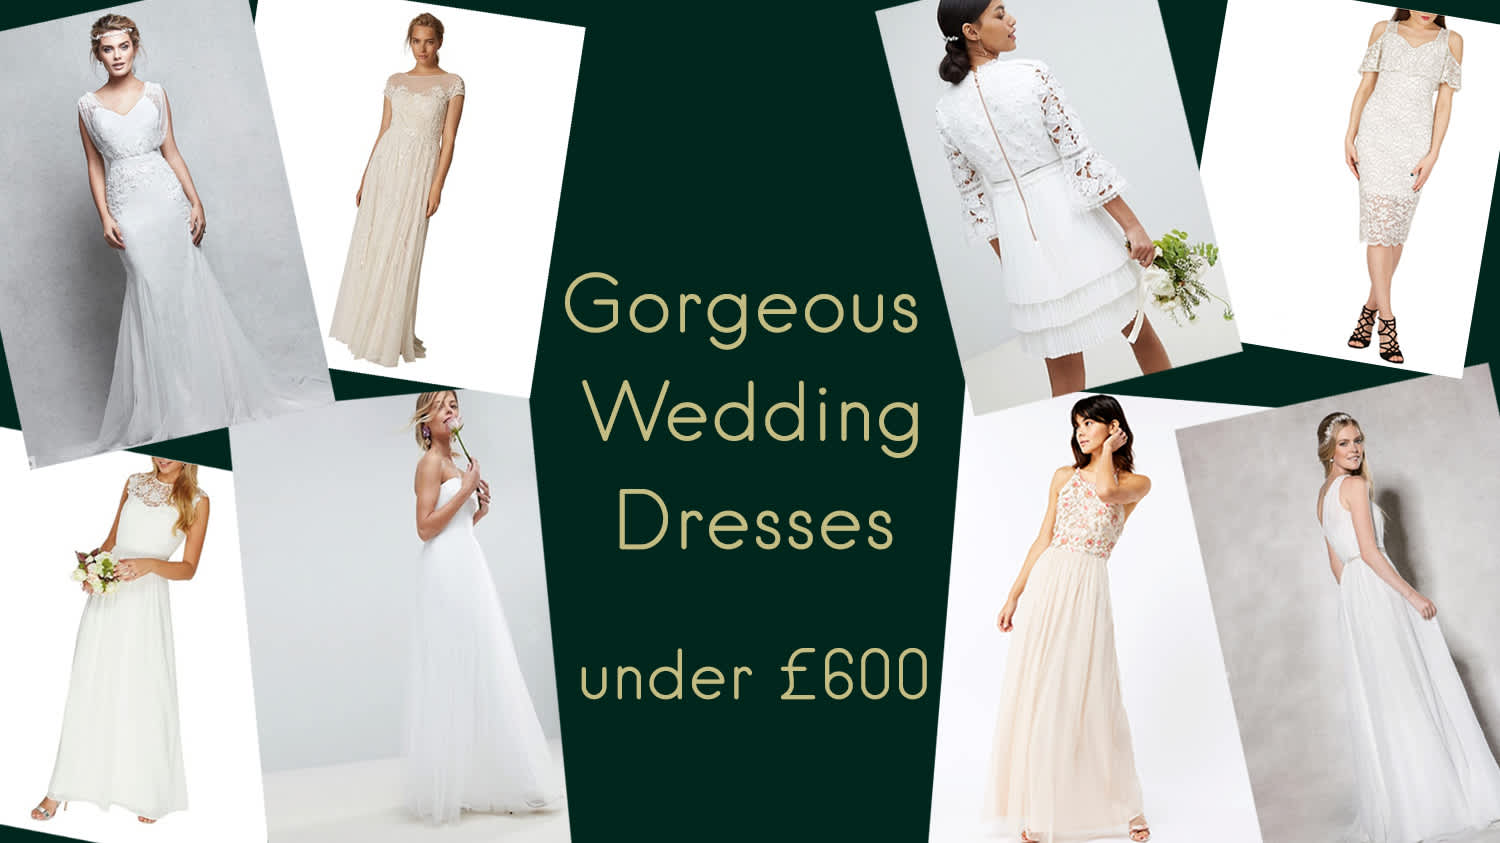 Gorgeous Wedding Dresses under £600